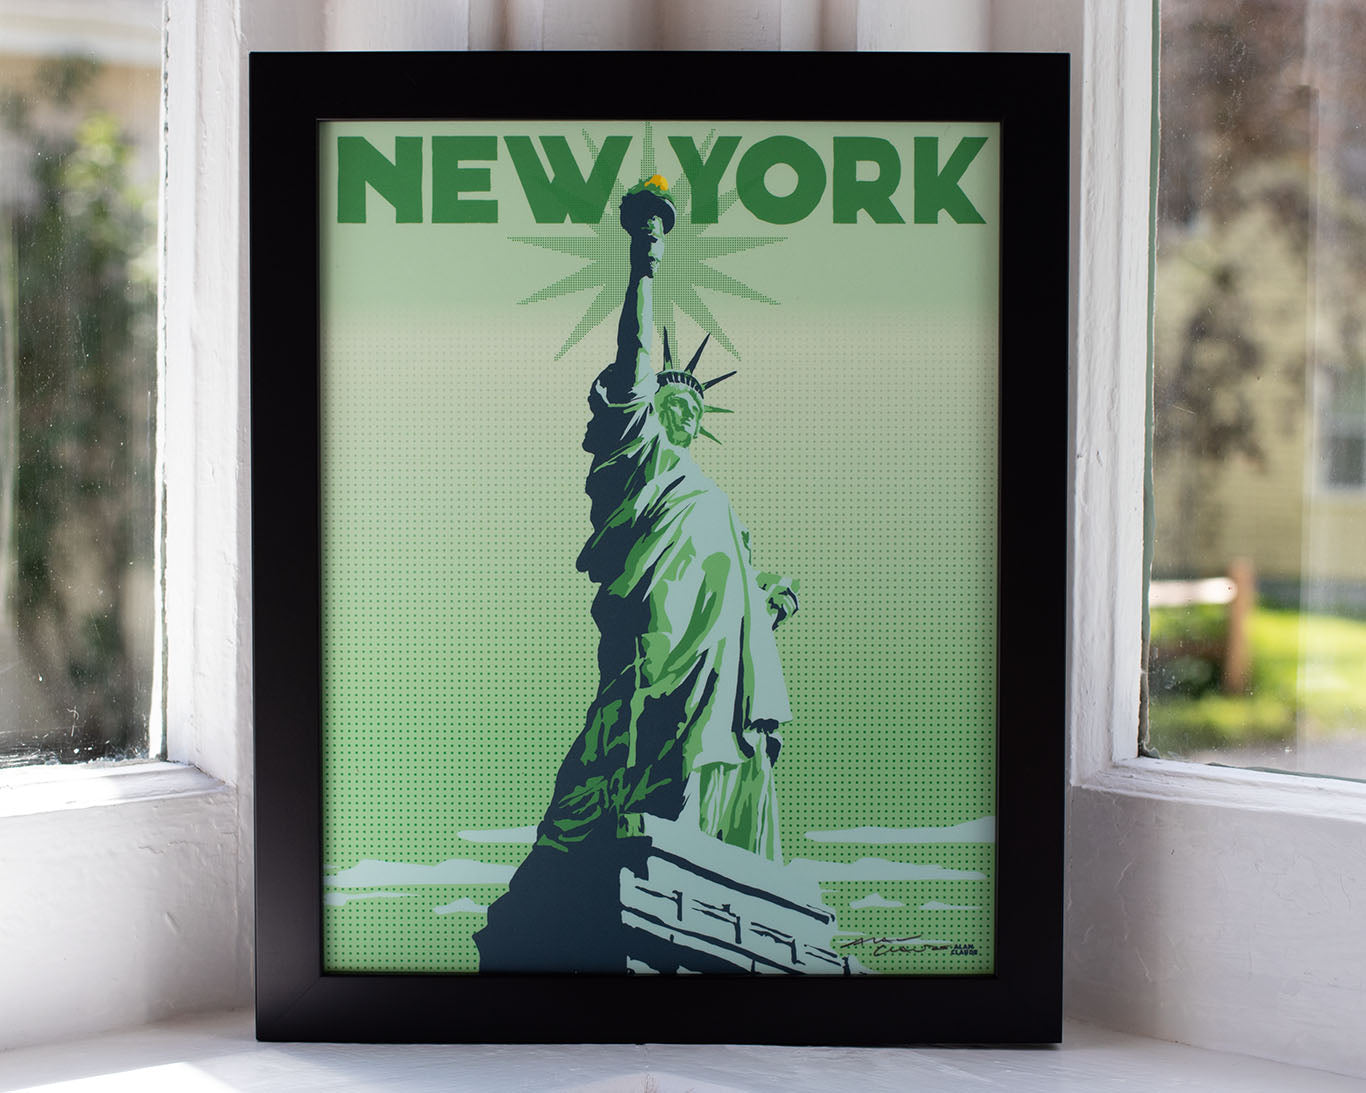 "Statue Of Liberty Framed Art Print 8"" x 10"" Travel Poster - New York"